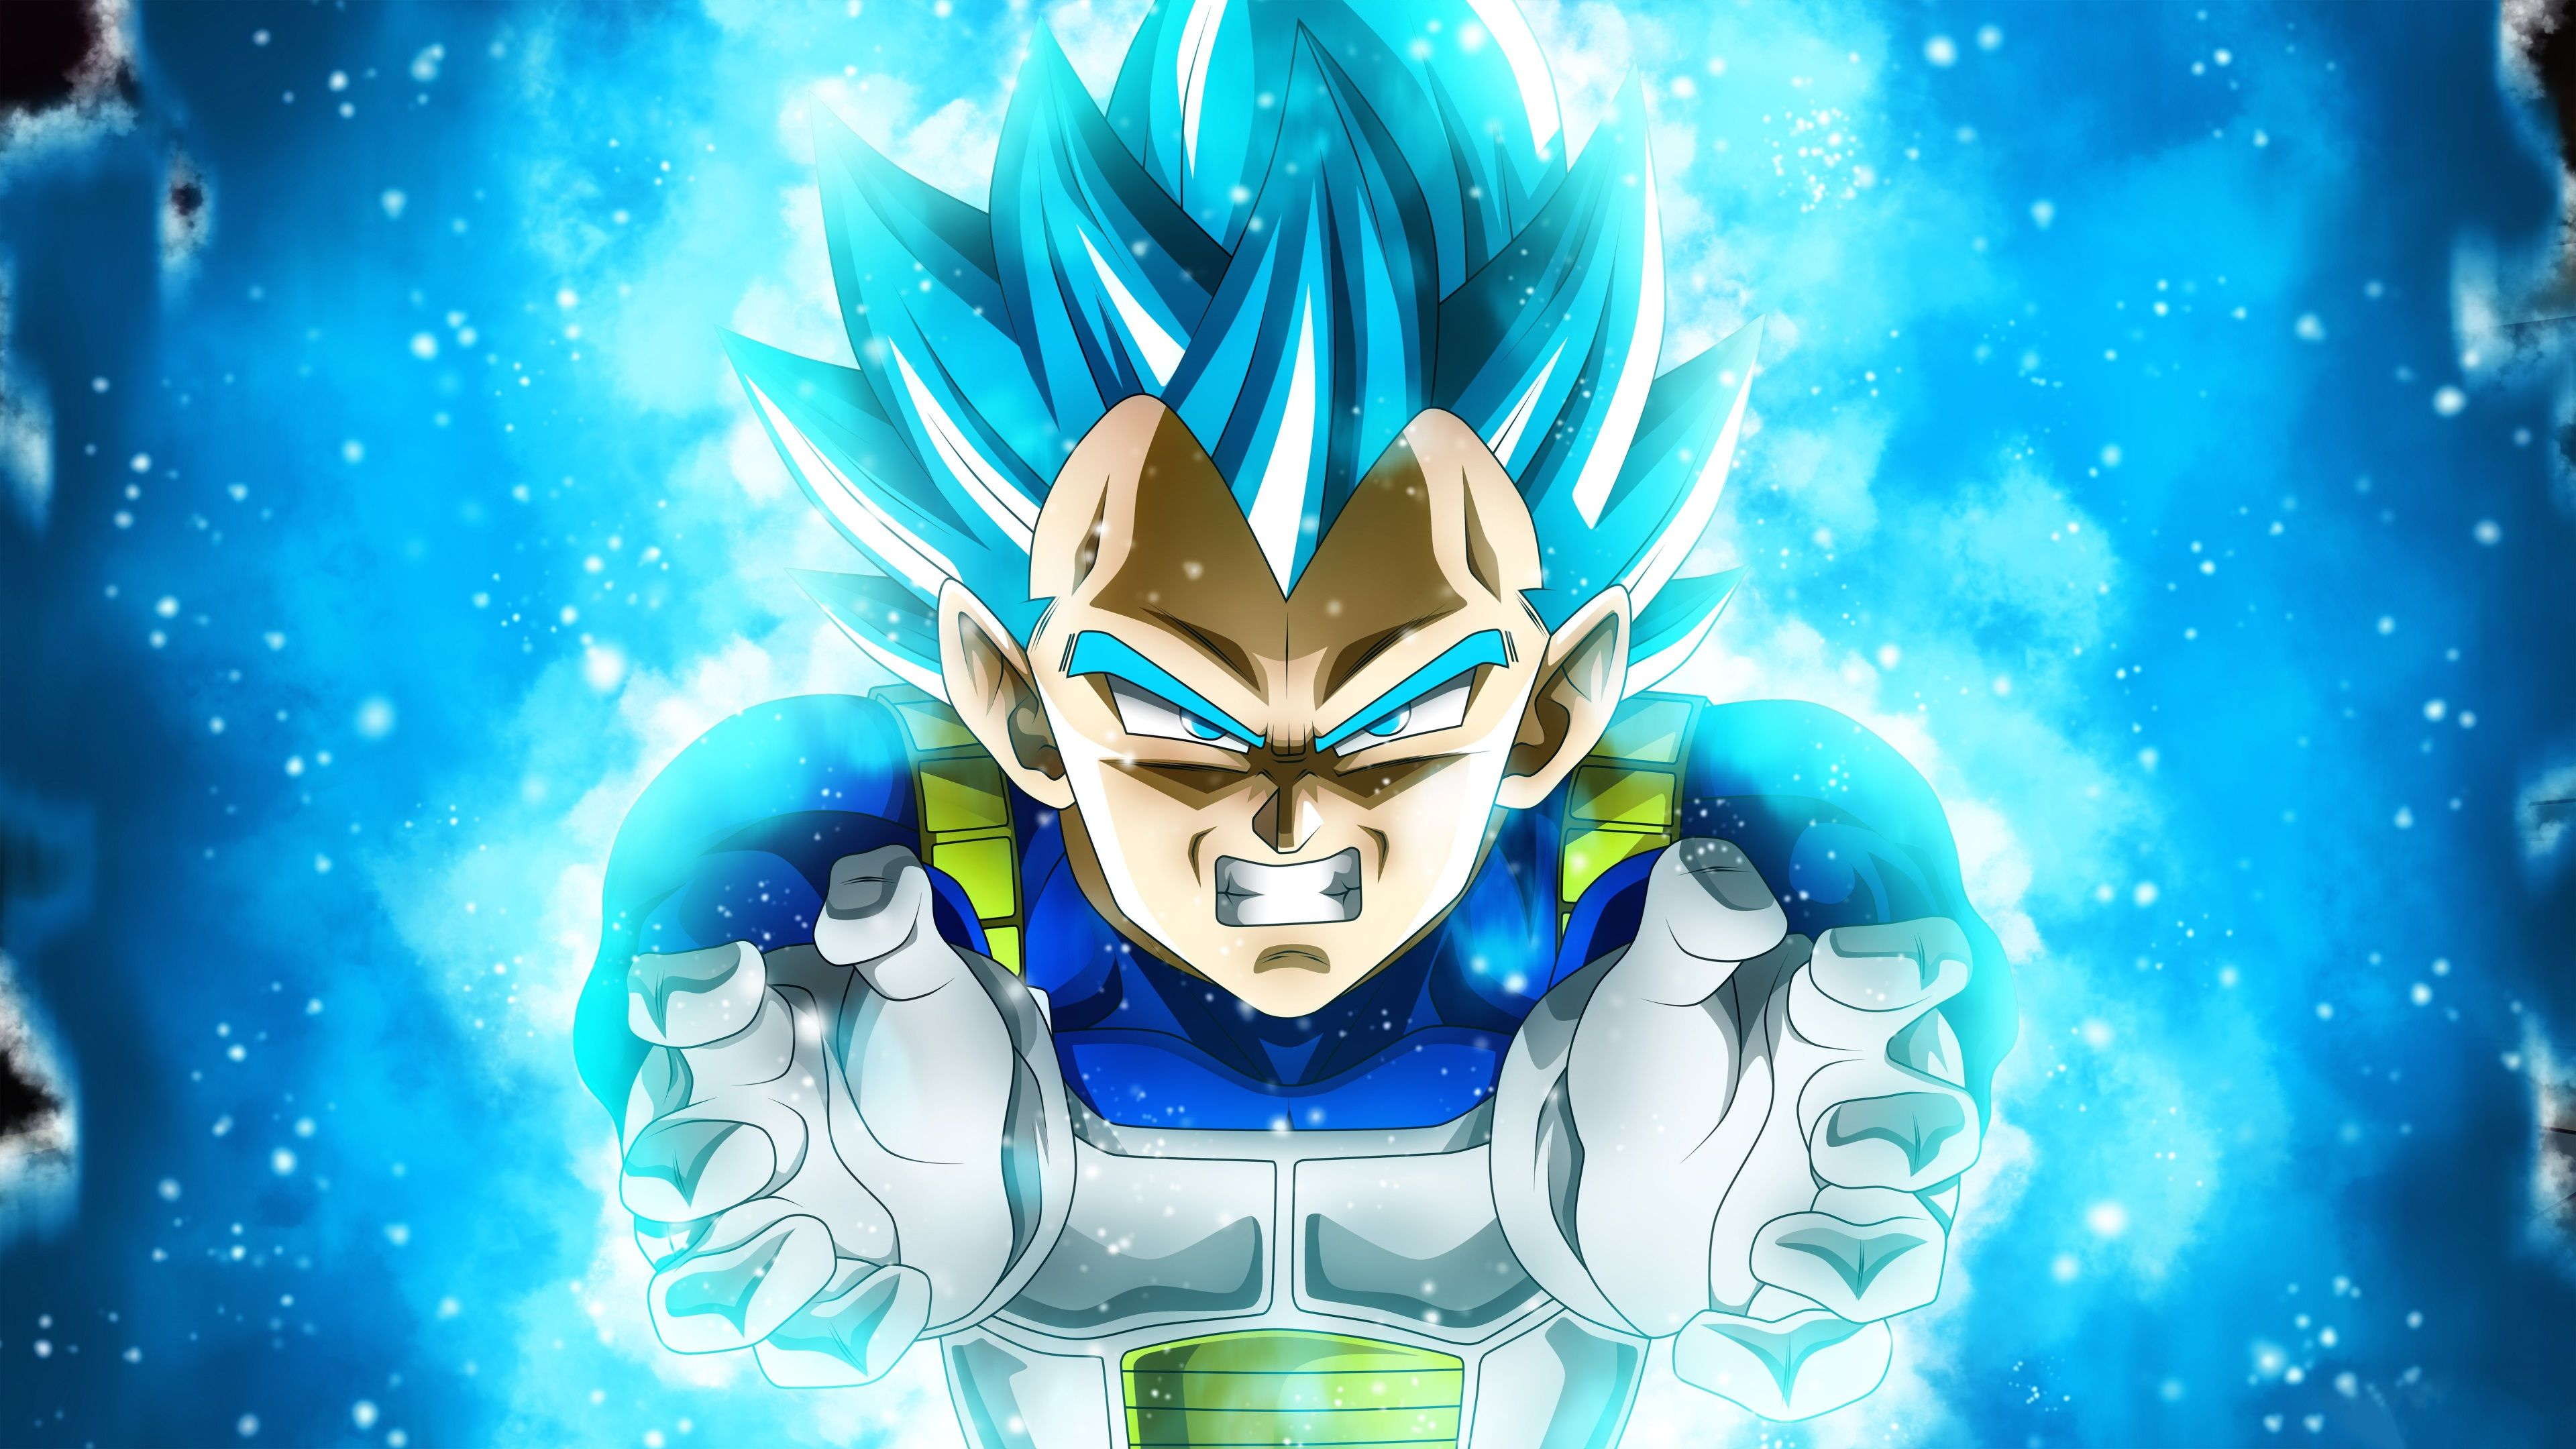 3840x2160 Dragon Ball Super 4k Free Wallpaper Photo Download